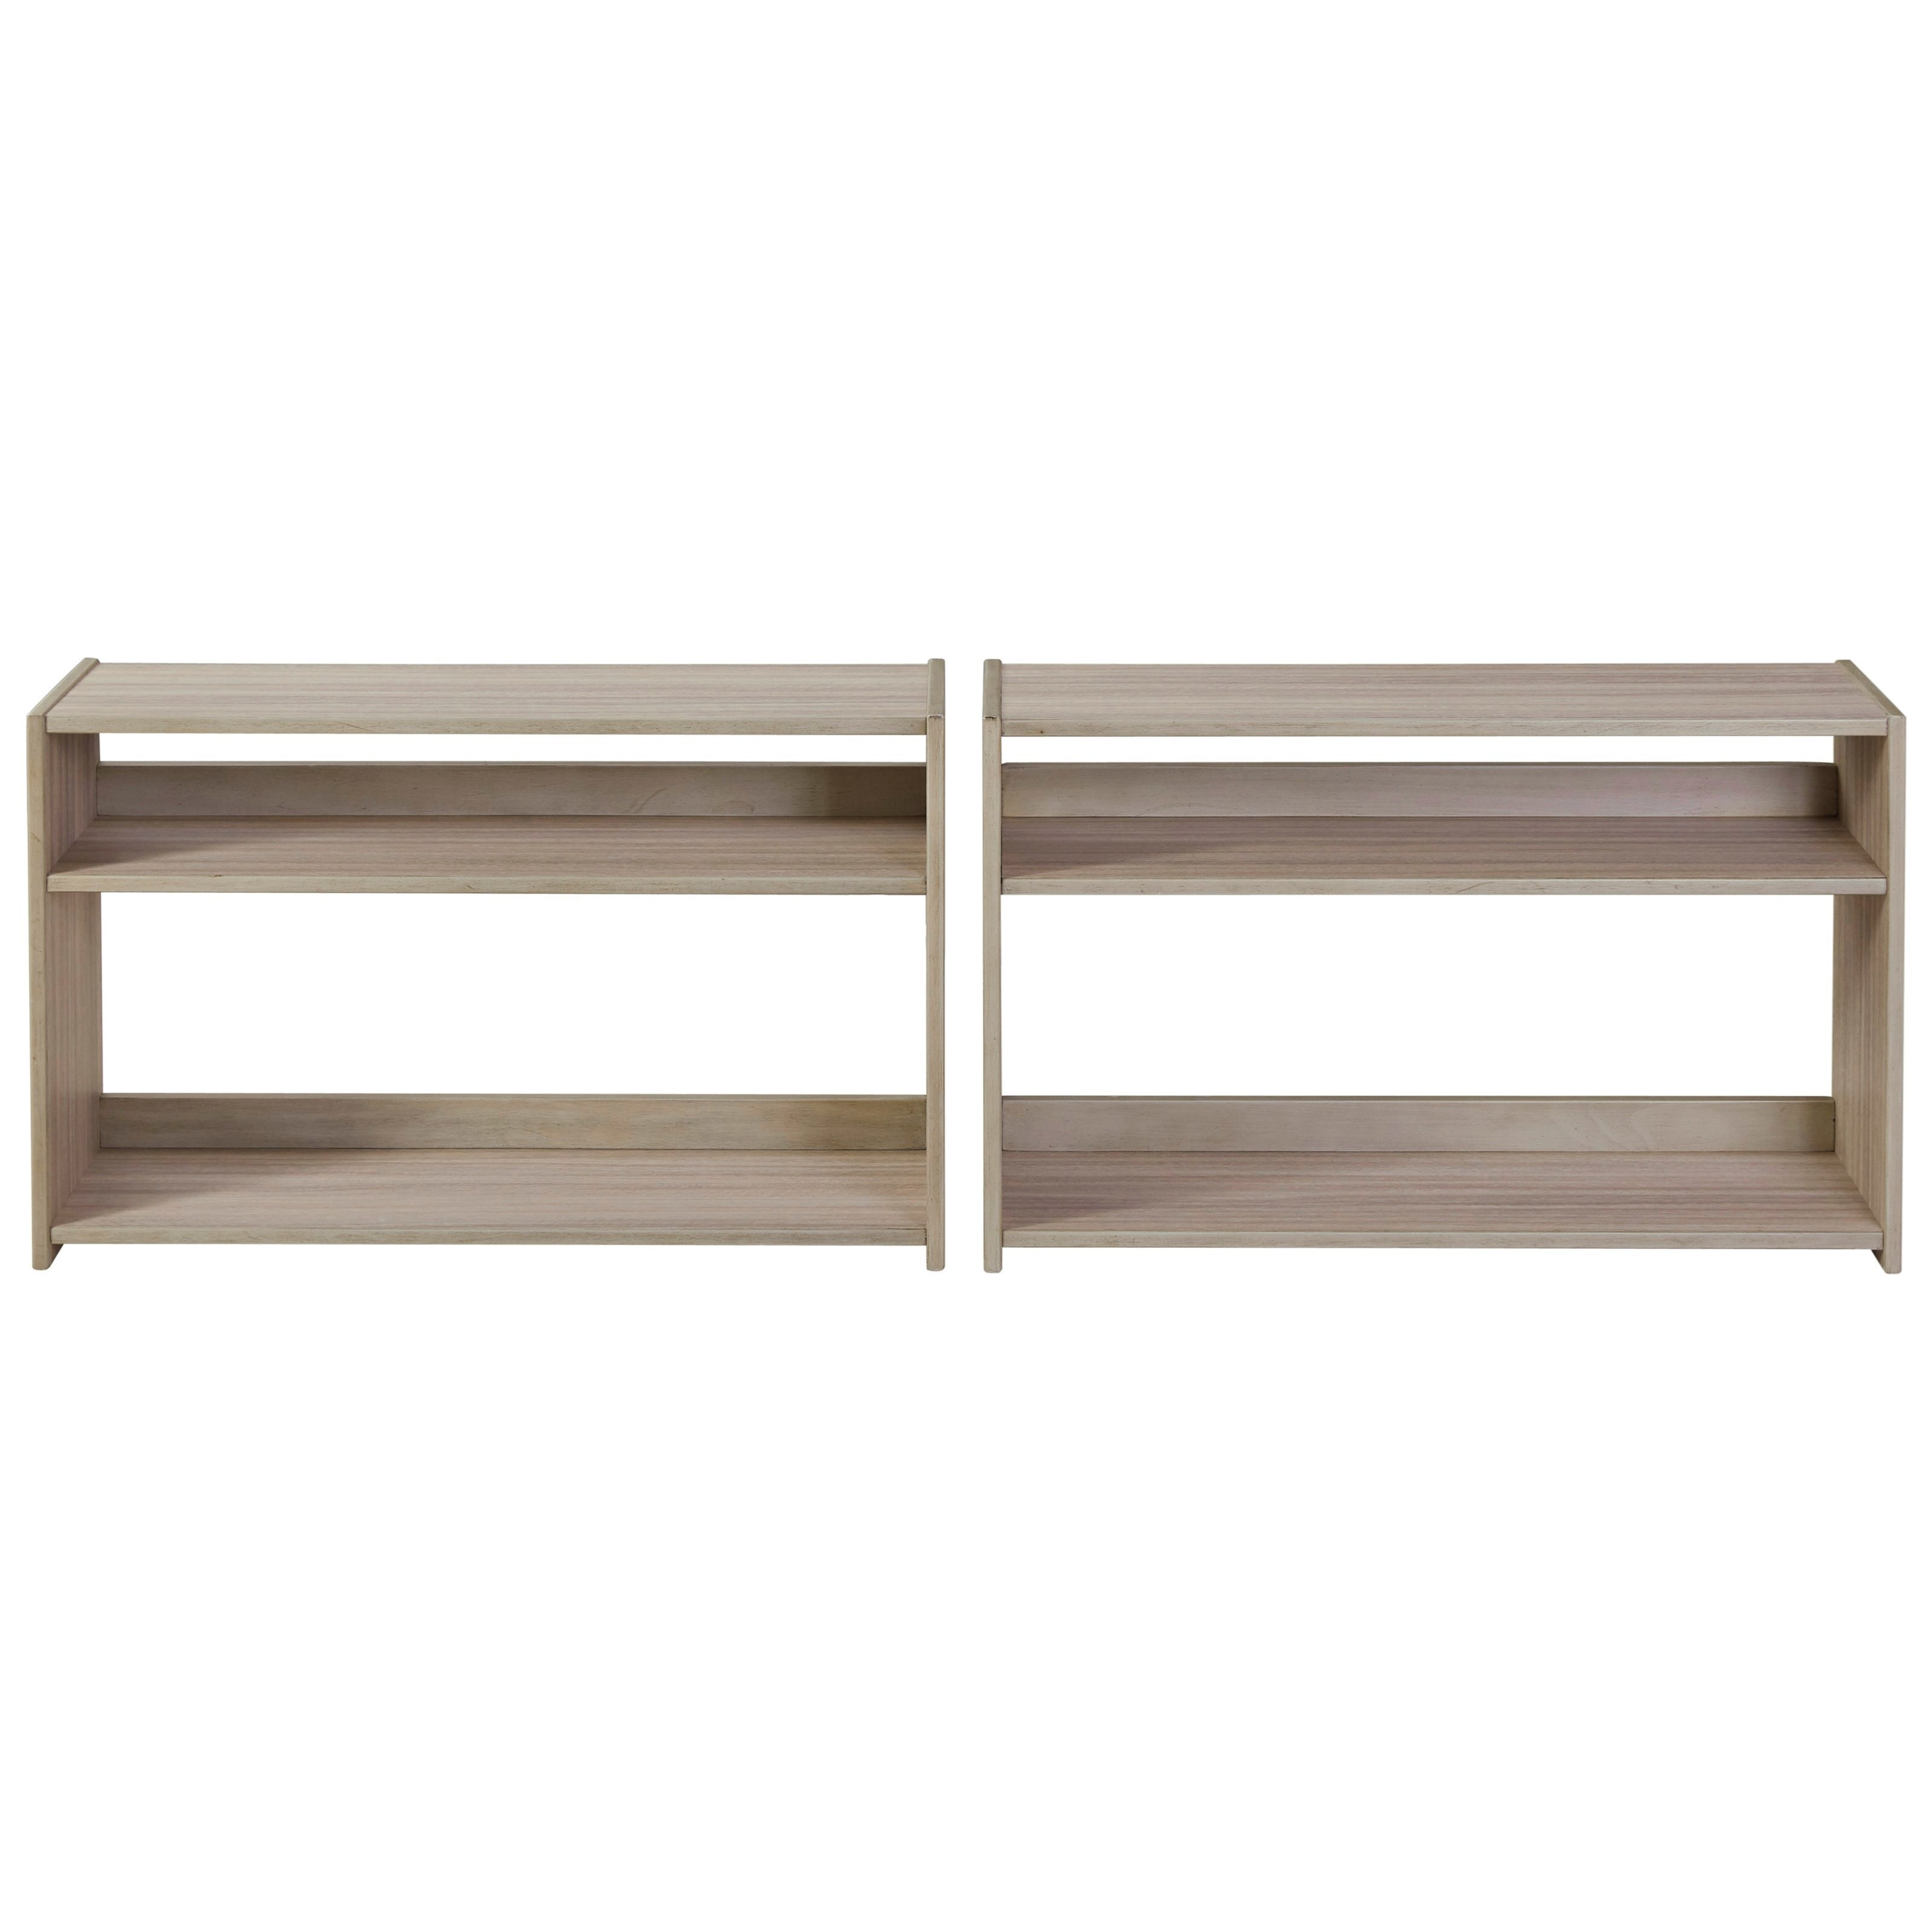 Wrenalyn Set of 2 Under Bed Bookcases by Signature Design by Ashley at Lindy's Furniture Company